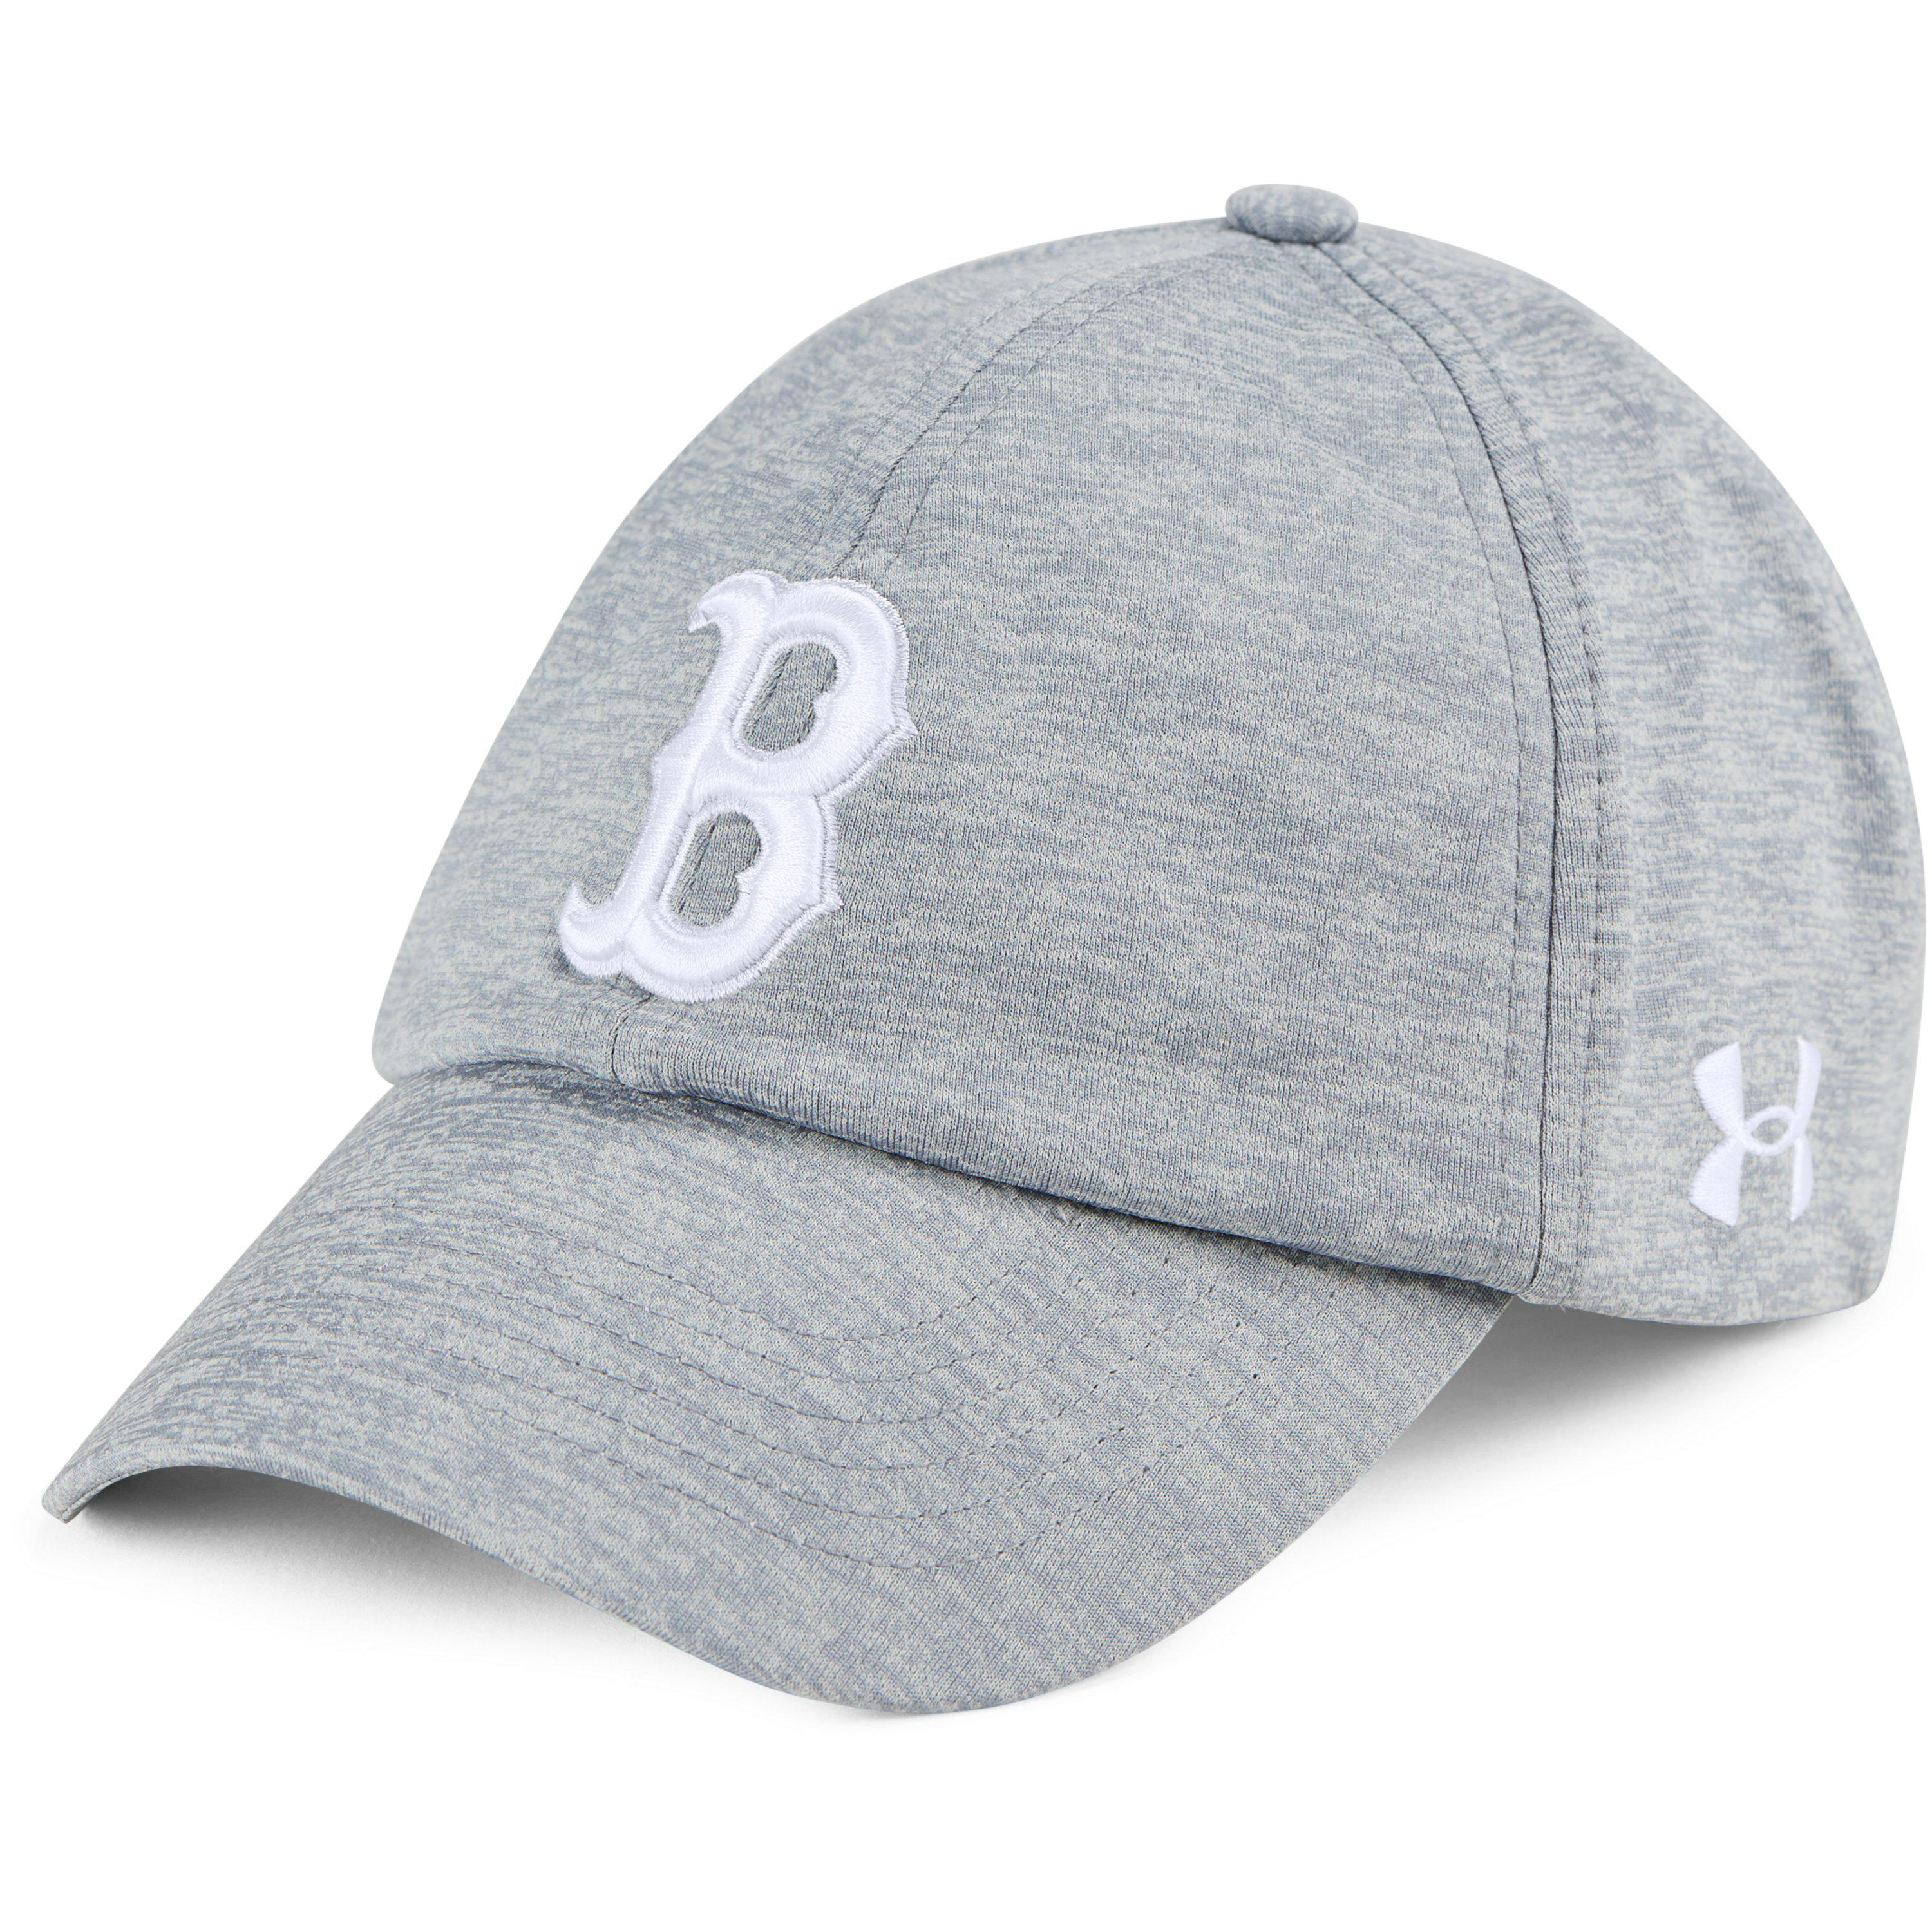 d6b817c1080 ... free shipping under armour. gray womens mlb renegade twist cap 77b22  6d5d7